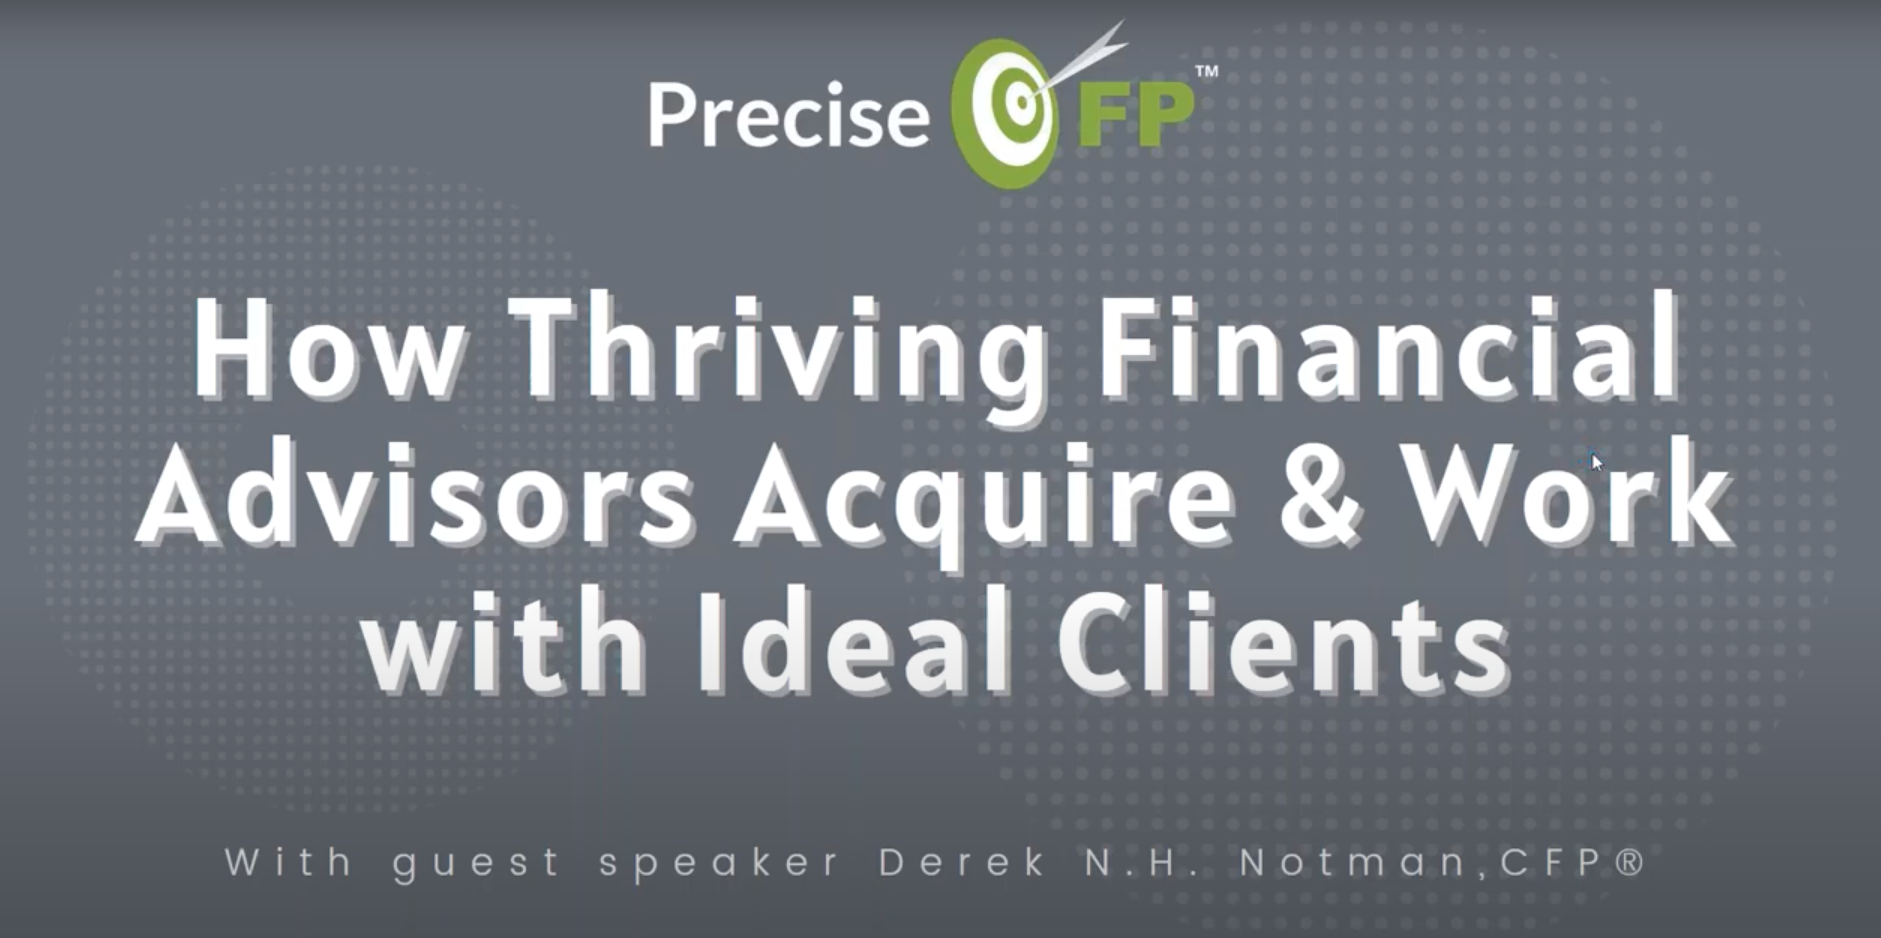 How Thriving Financial Advisors Acquire & Work with Ideal Clients – Webinar Replay